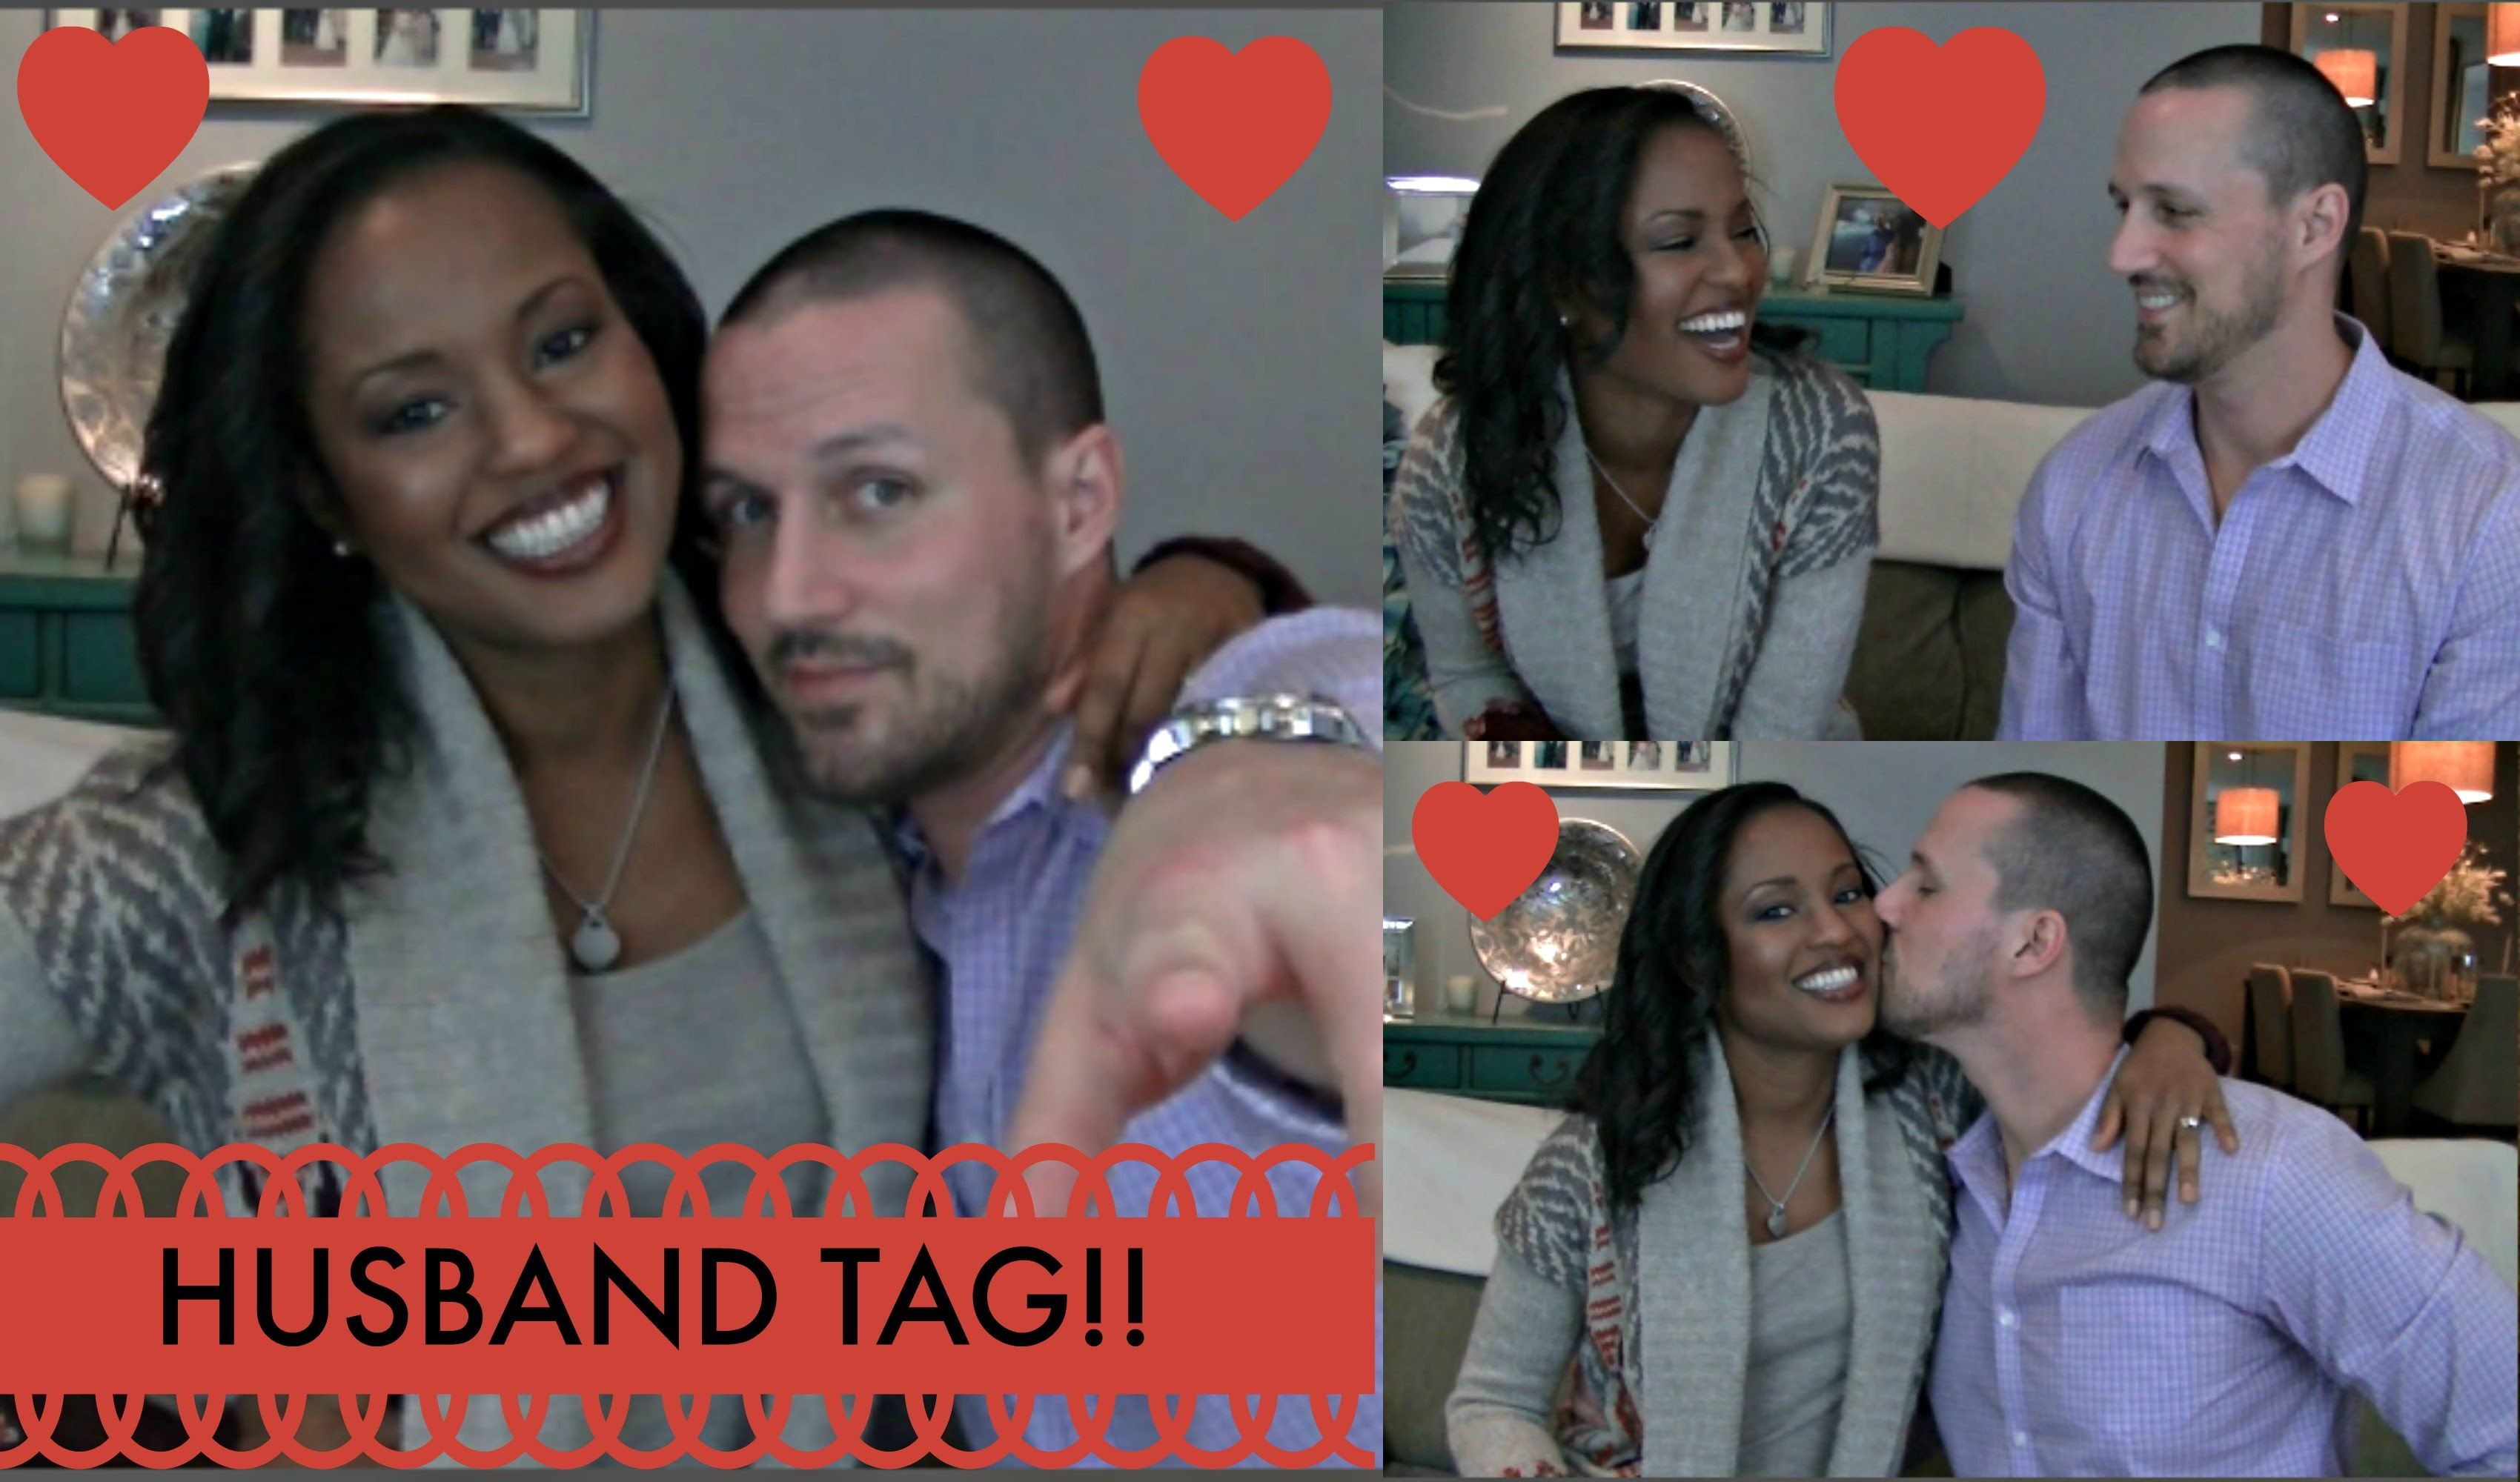 THE HUSBAND TAG! MEET MY HUSBAND GABE!!